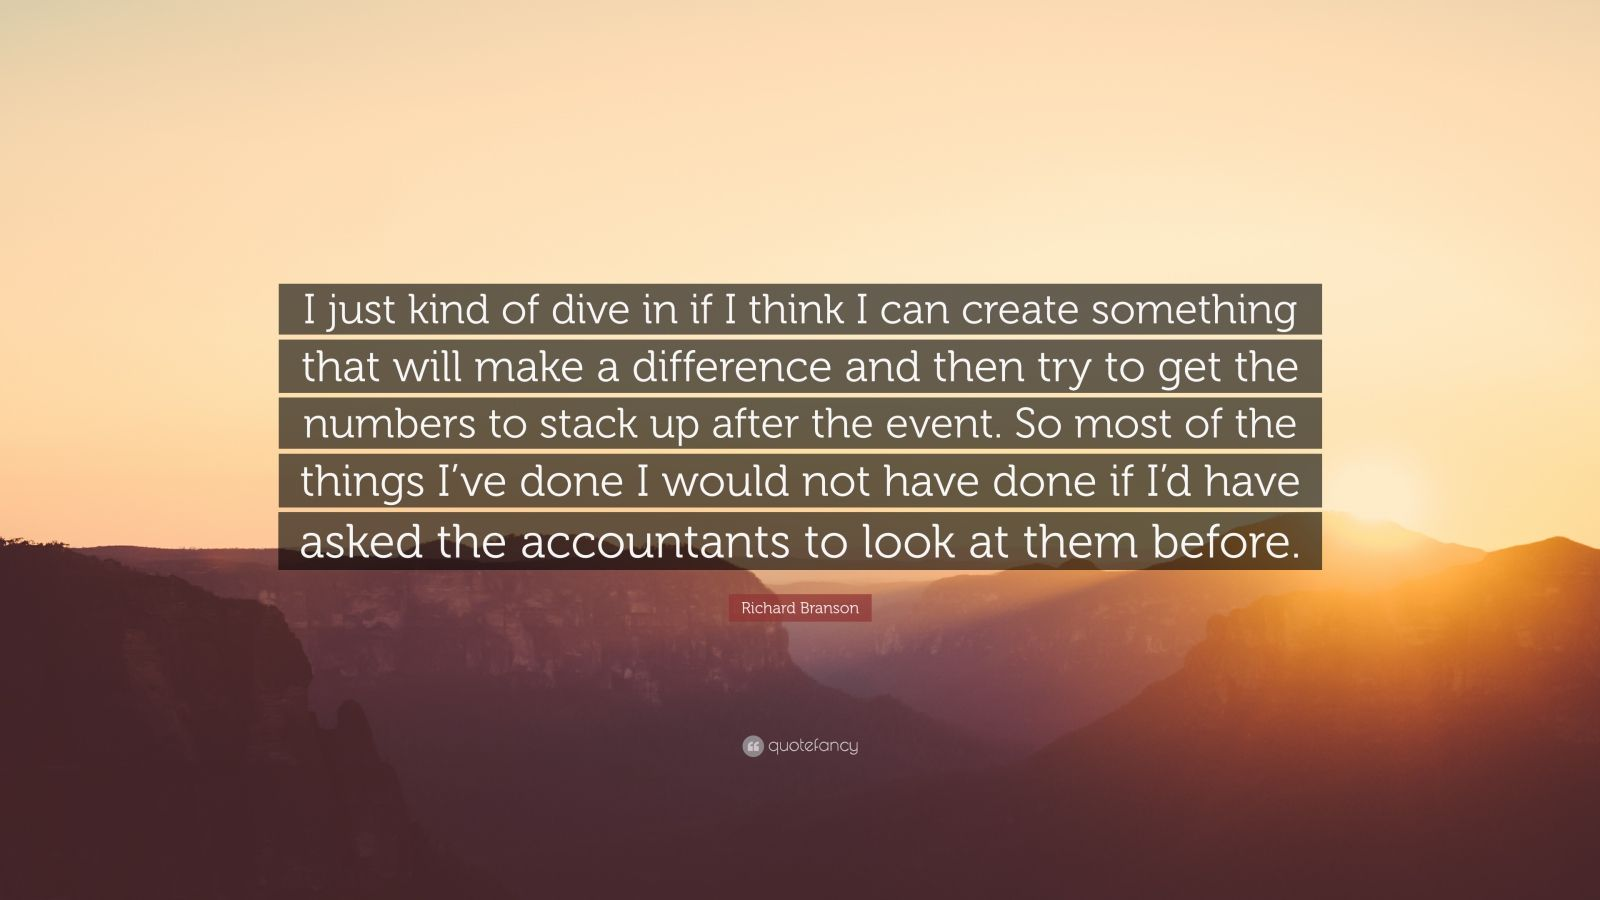 """Richard Branson Quote: """"I just kind of dive in if I think I can create something that will make a difference and then try to get the numbers to stack up after the event. So most of the things I've done I would not have done if I'd have asked the accountants to look at them before."""""""